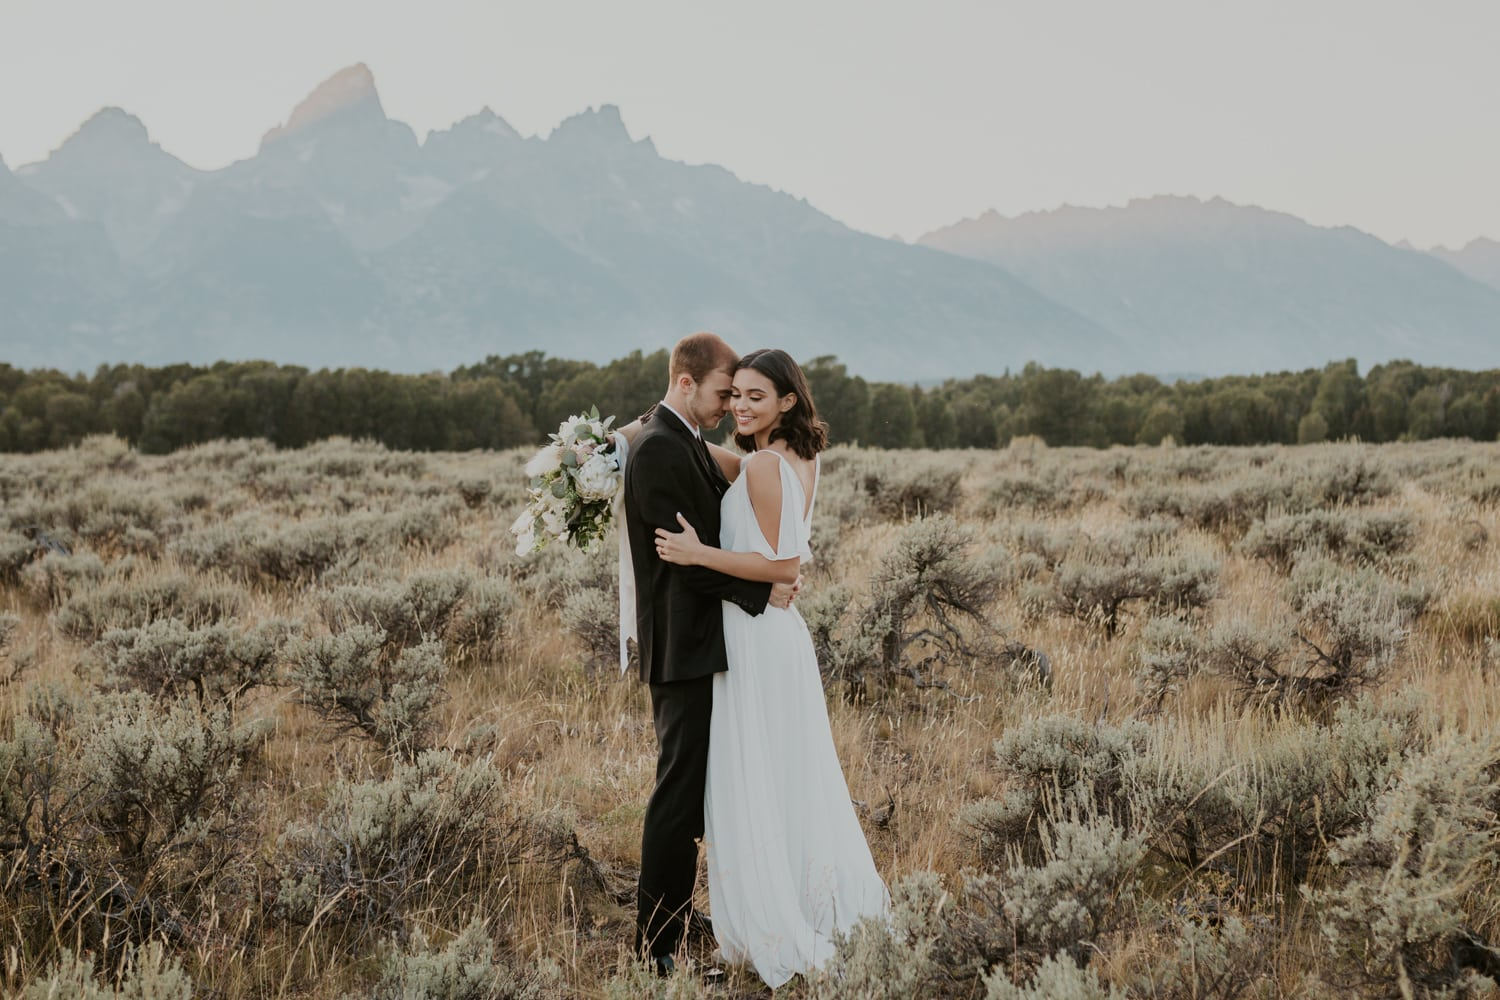 A wedding in Grand Teton National Park.